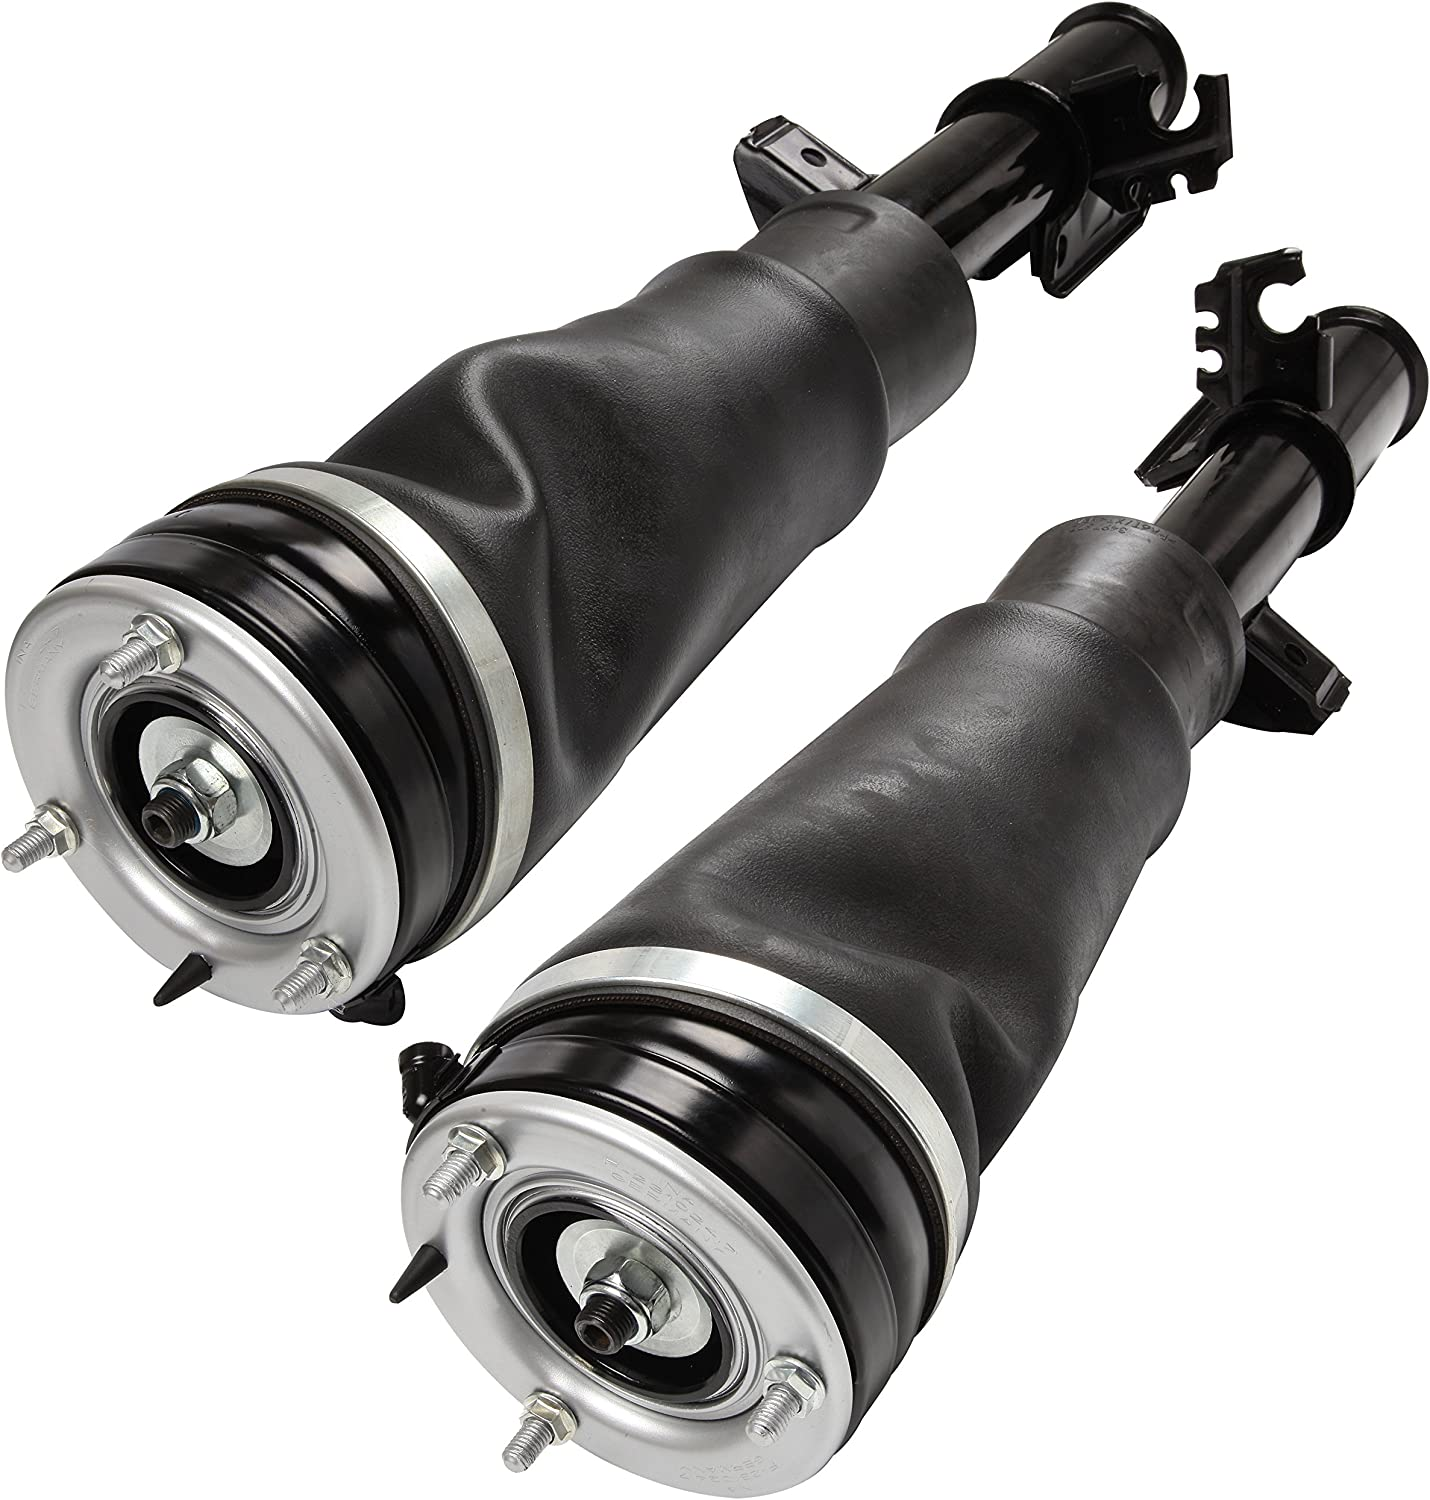 SCITOO Air Struts Suspension Kits 2Pcs Front Shocks Struts Suspensions Replacement Struts Airmatic Kits fit for 2003 2004 2005 2006 2007 2008 2009 2010 2011 2012 Land Rover Range Rover